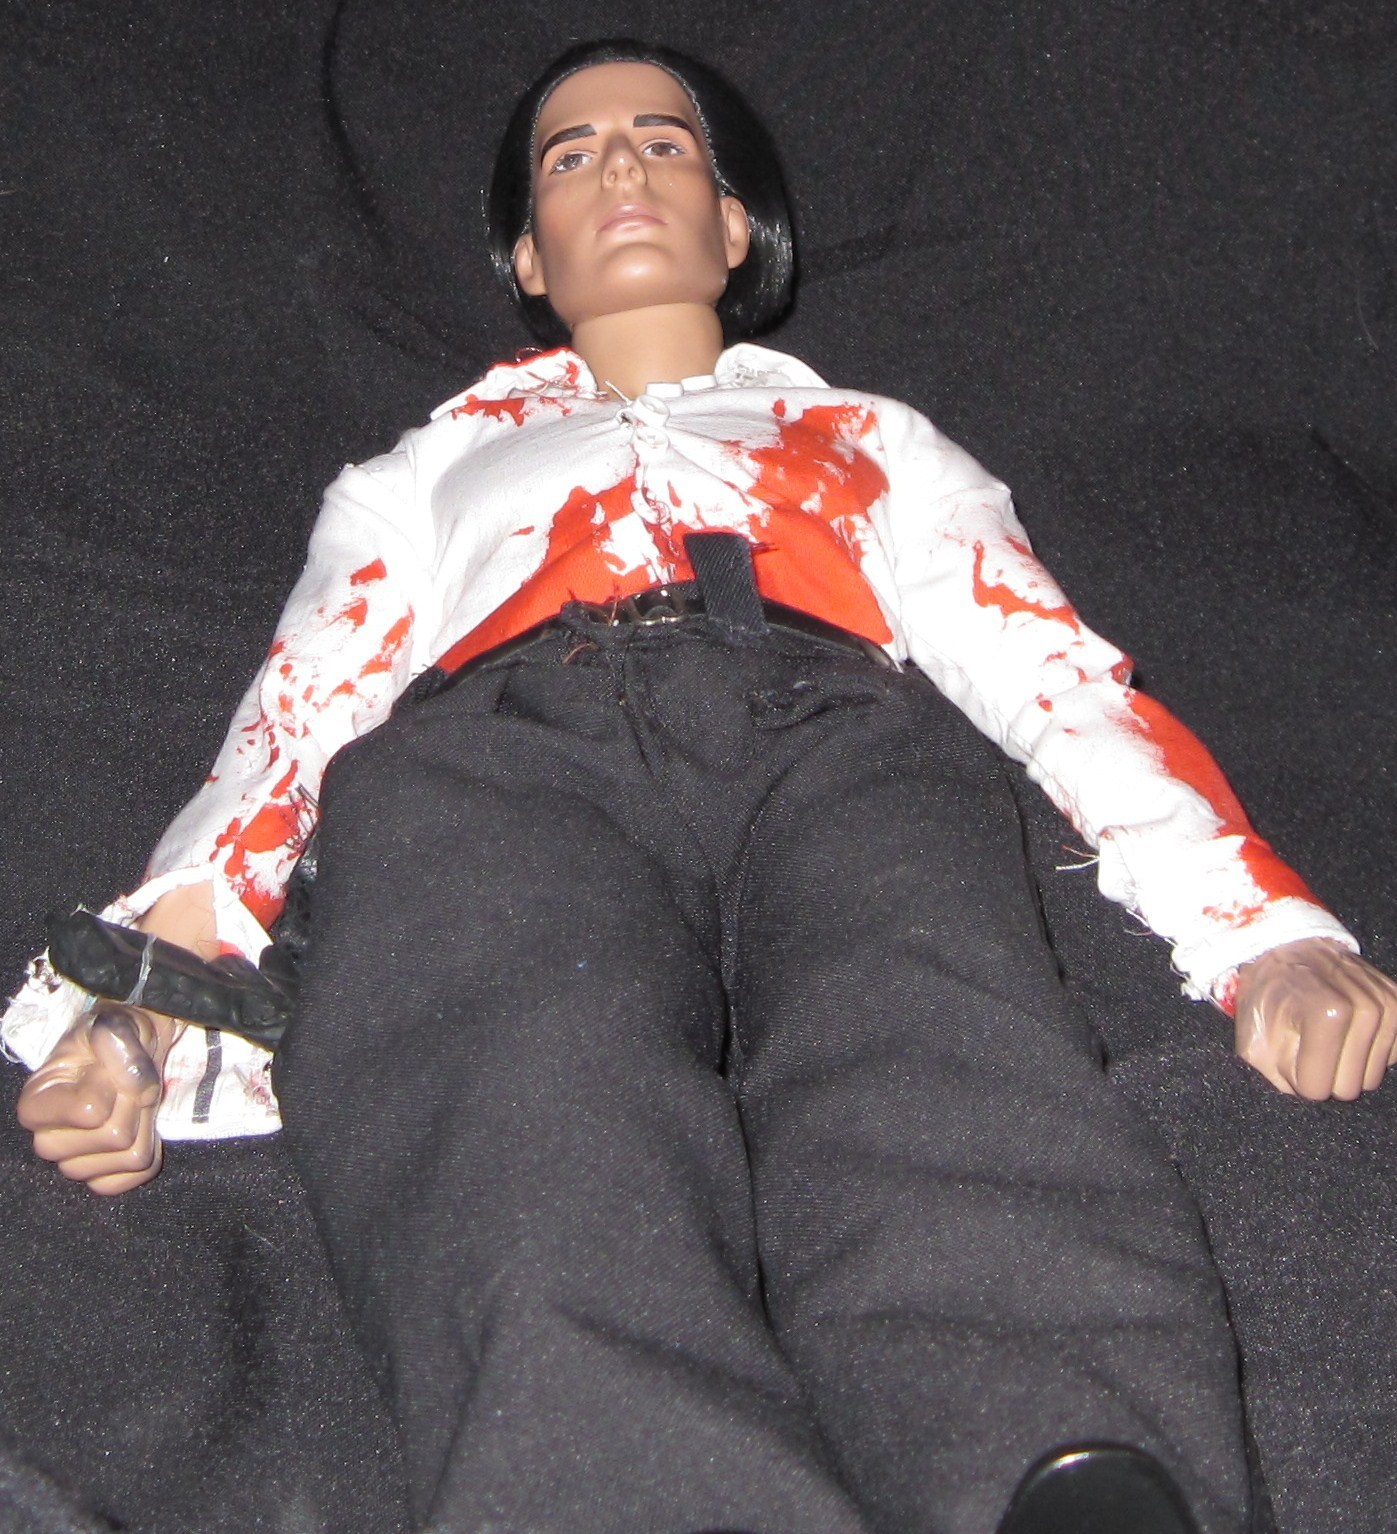 OOAK Hotch doll (Mayhem)